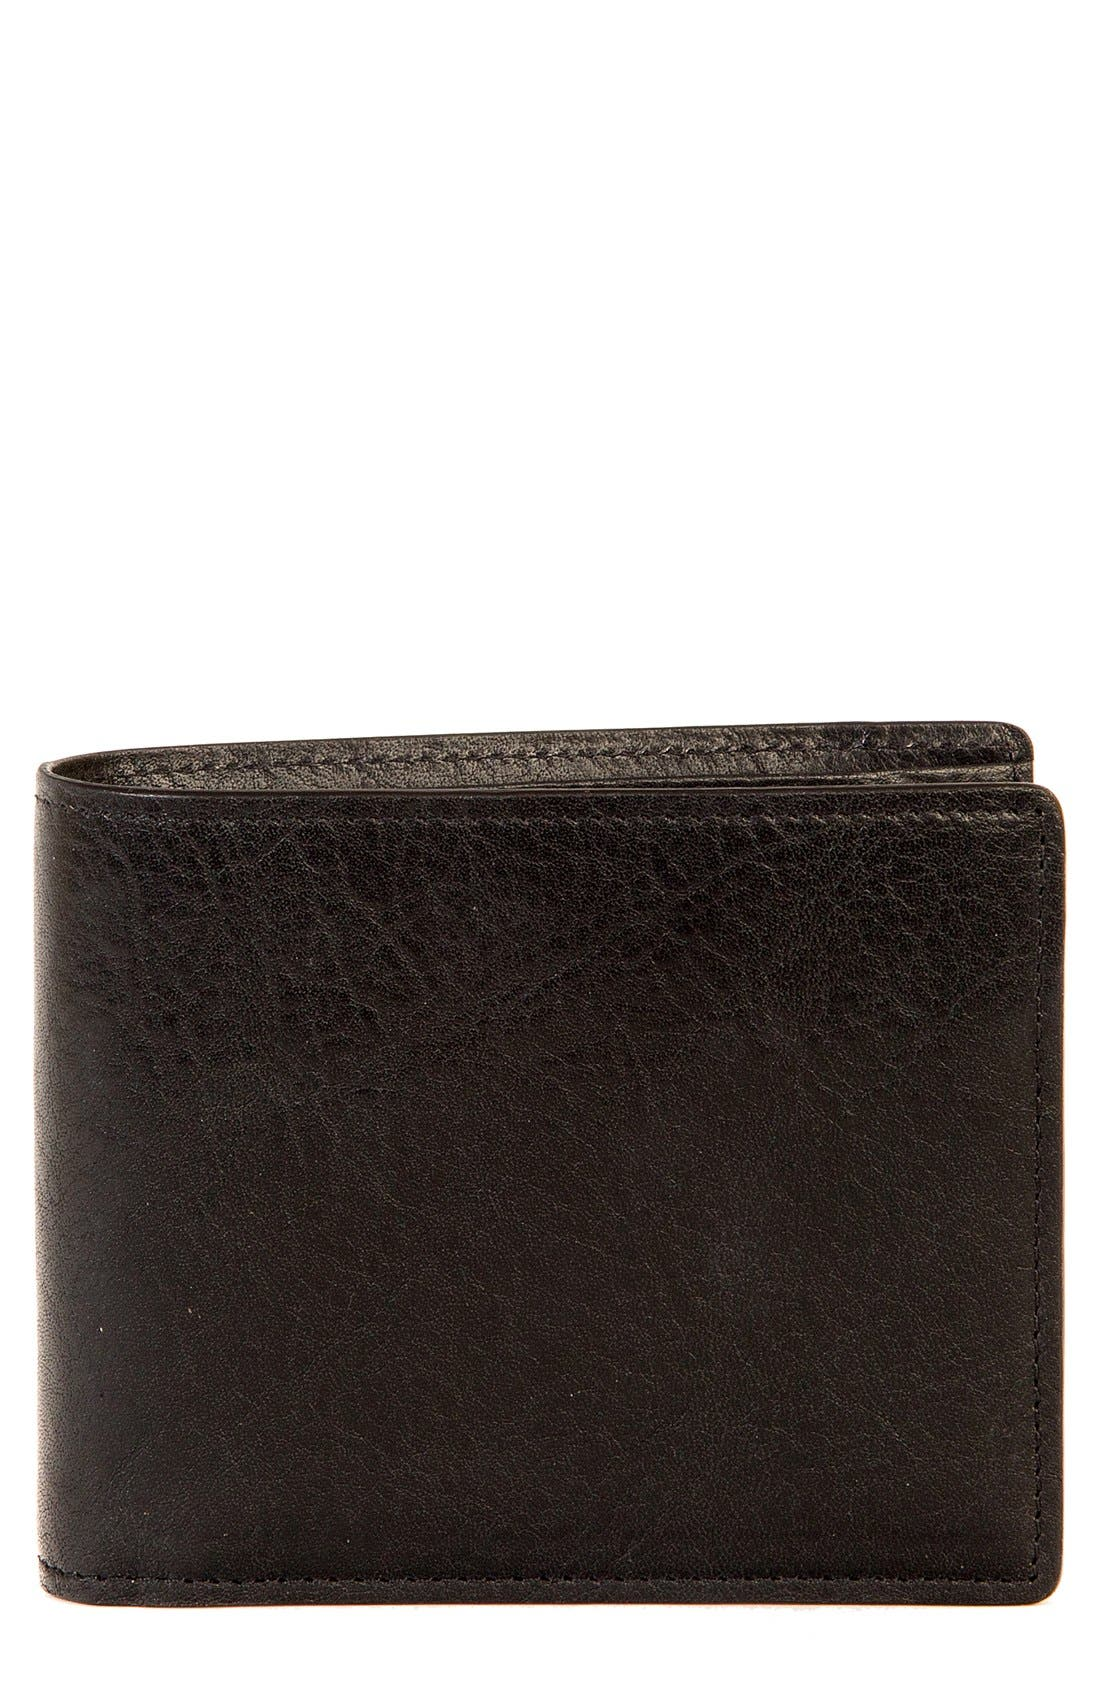 'Becker' RFID Leather Wallet,                         Main,                         color, 001